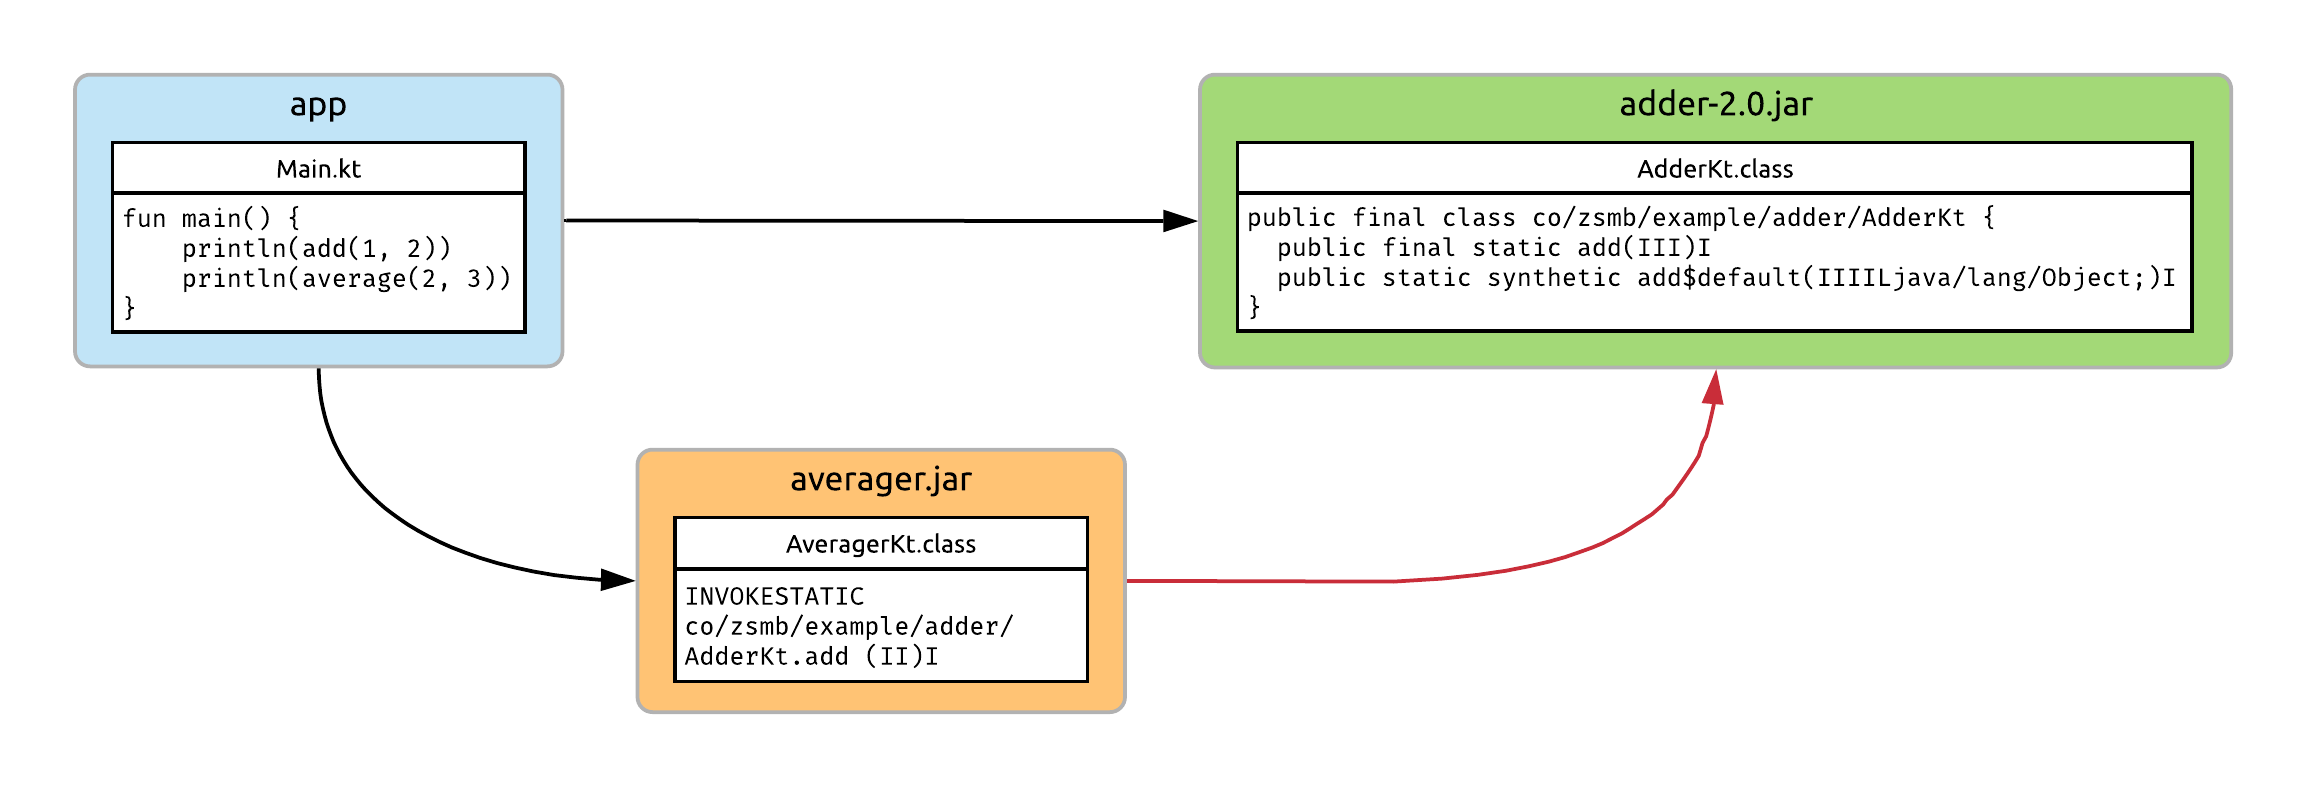 Module structure with now incompatible bytecode snippets